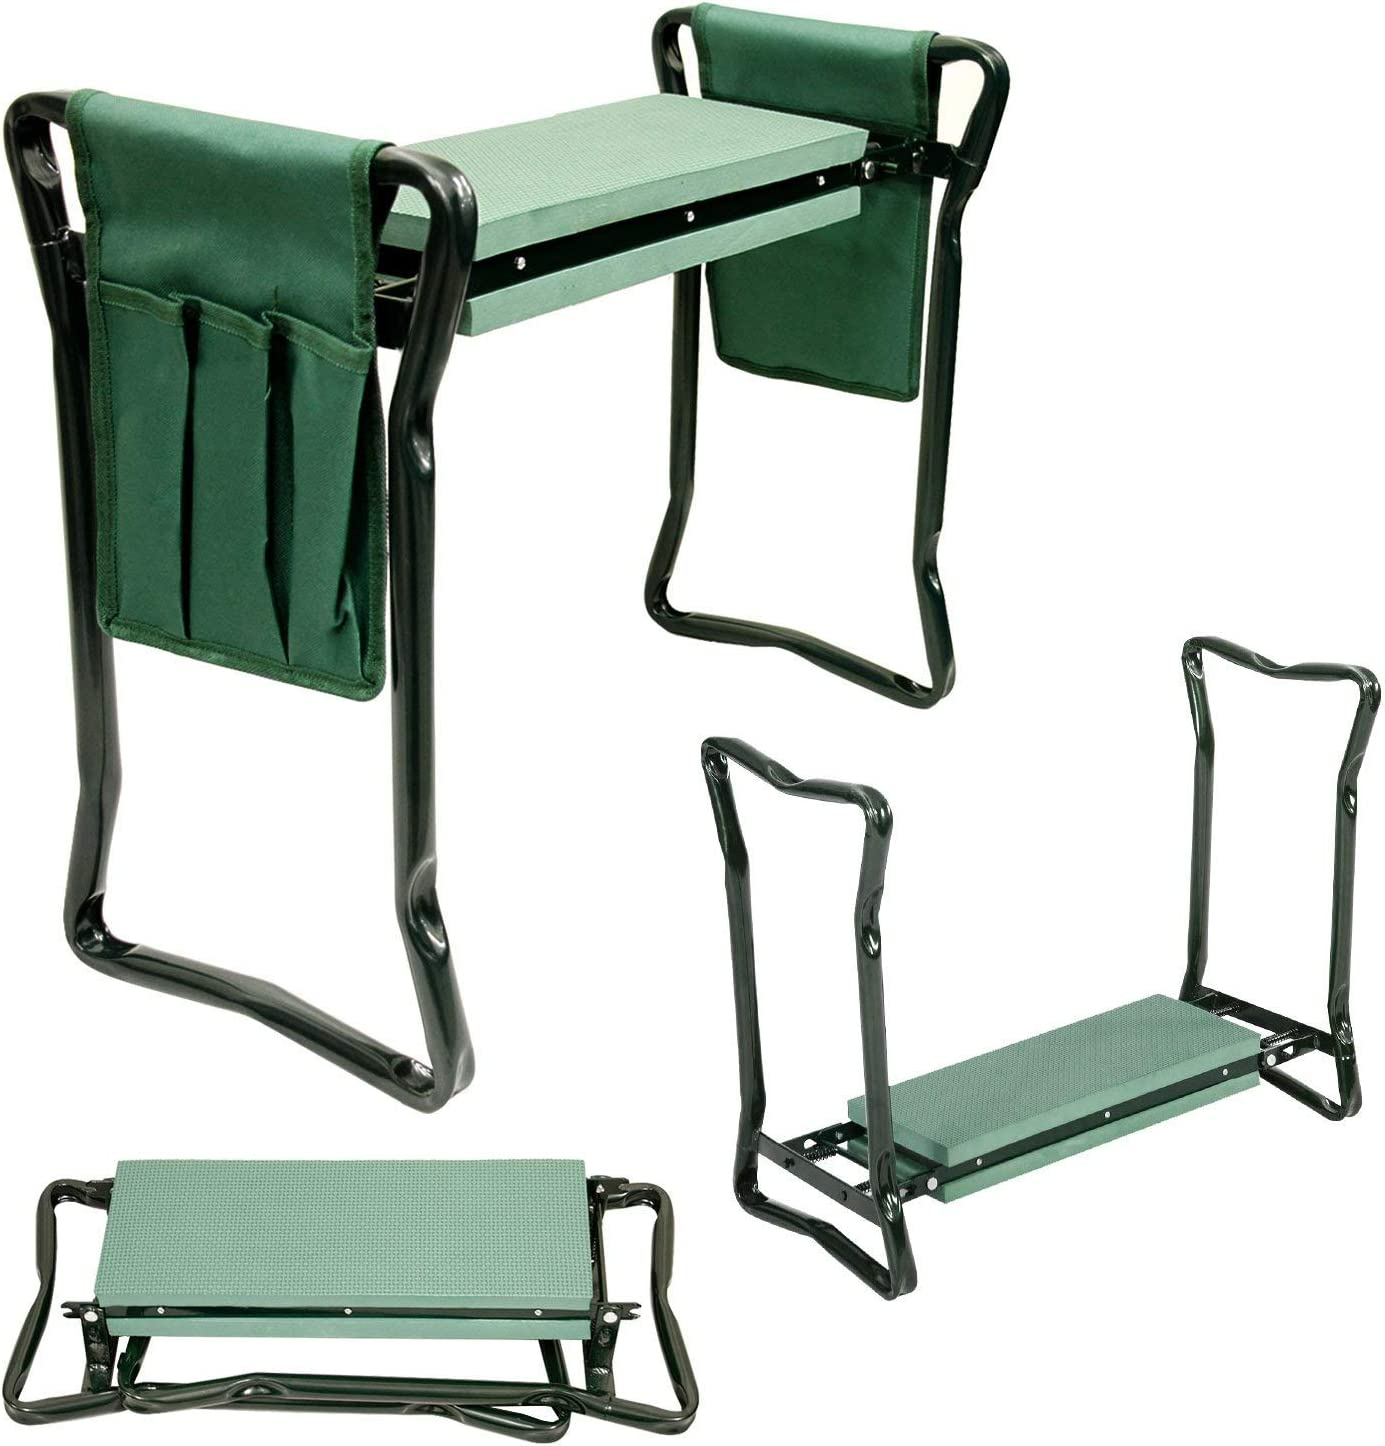 Portable GARDEN KNEELER Foam Chair Seat Gardening Knee Pad Padded Stool NEW